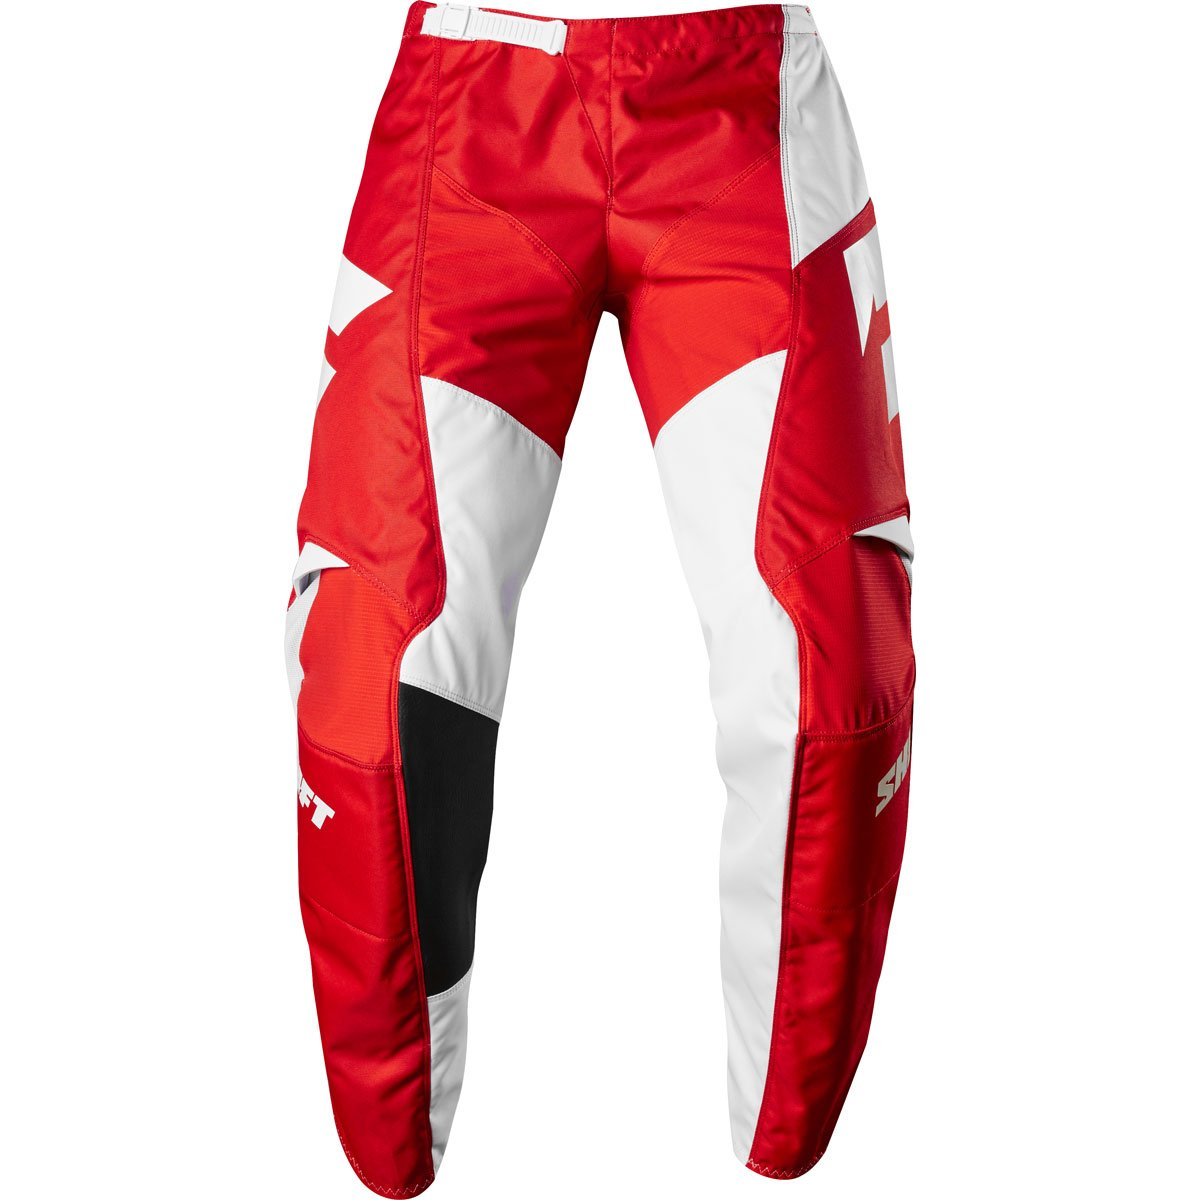 Shift Racing Whit3 Ninety Seven Men's Off-Road Motorcycle Pants - 36 / Red